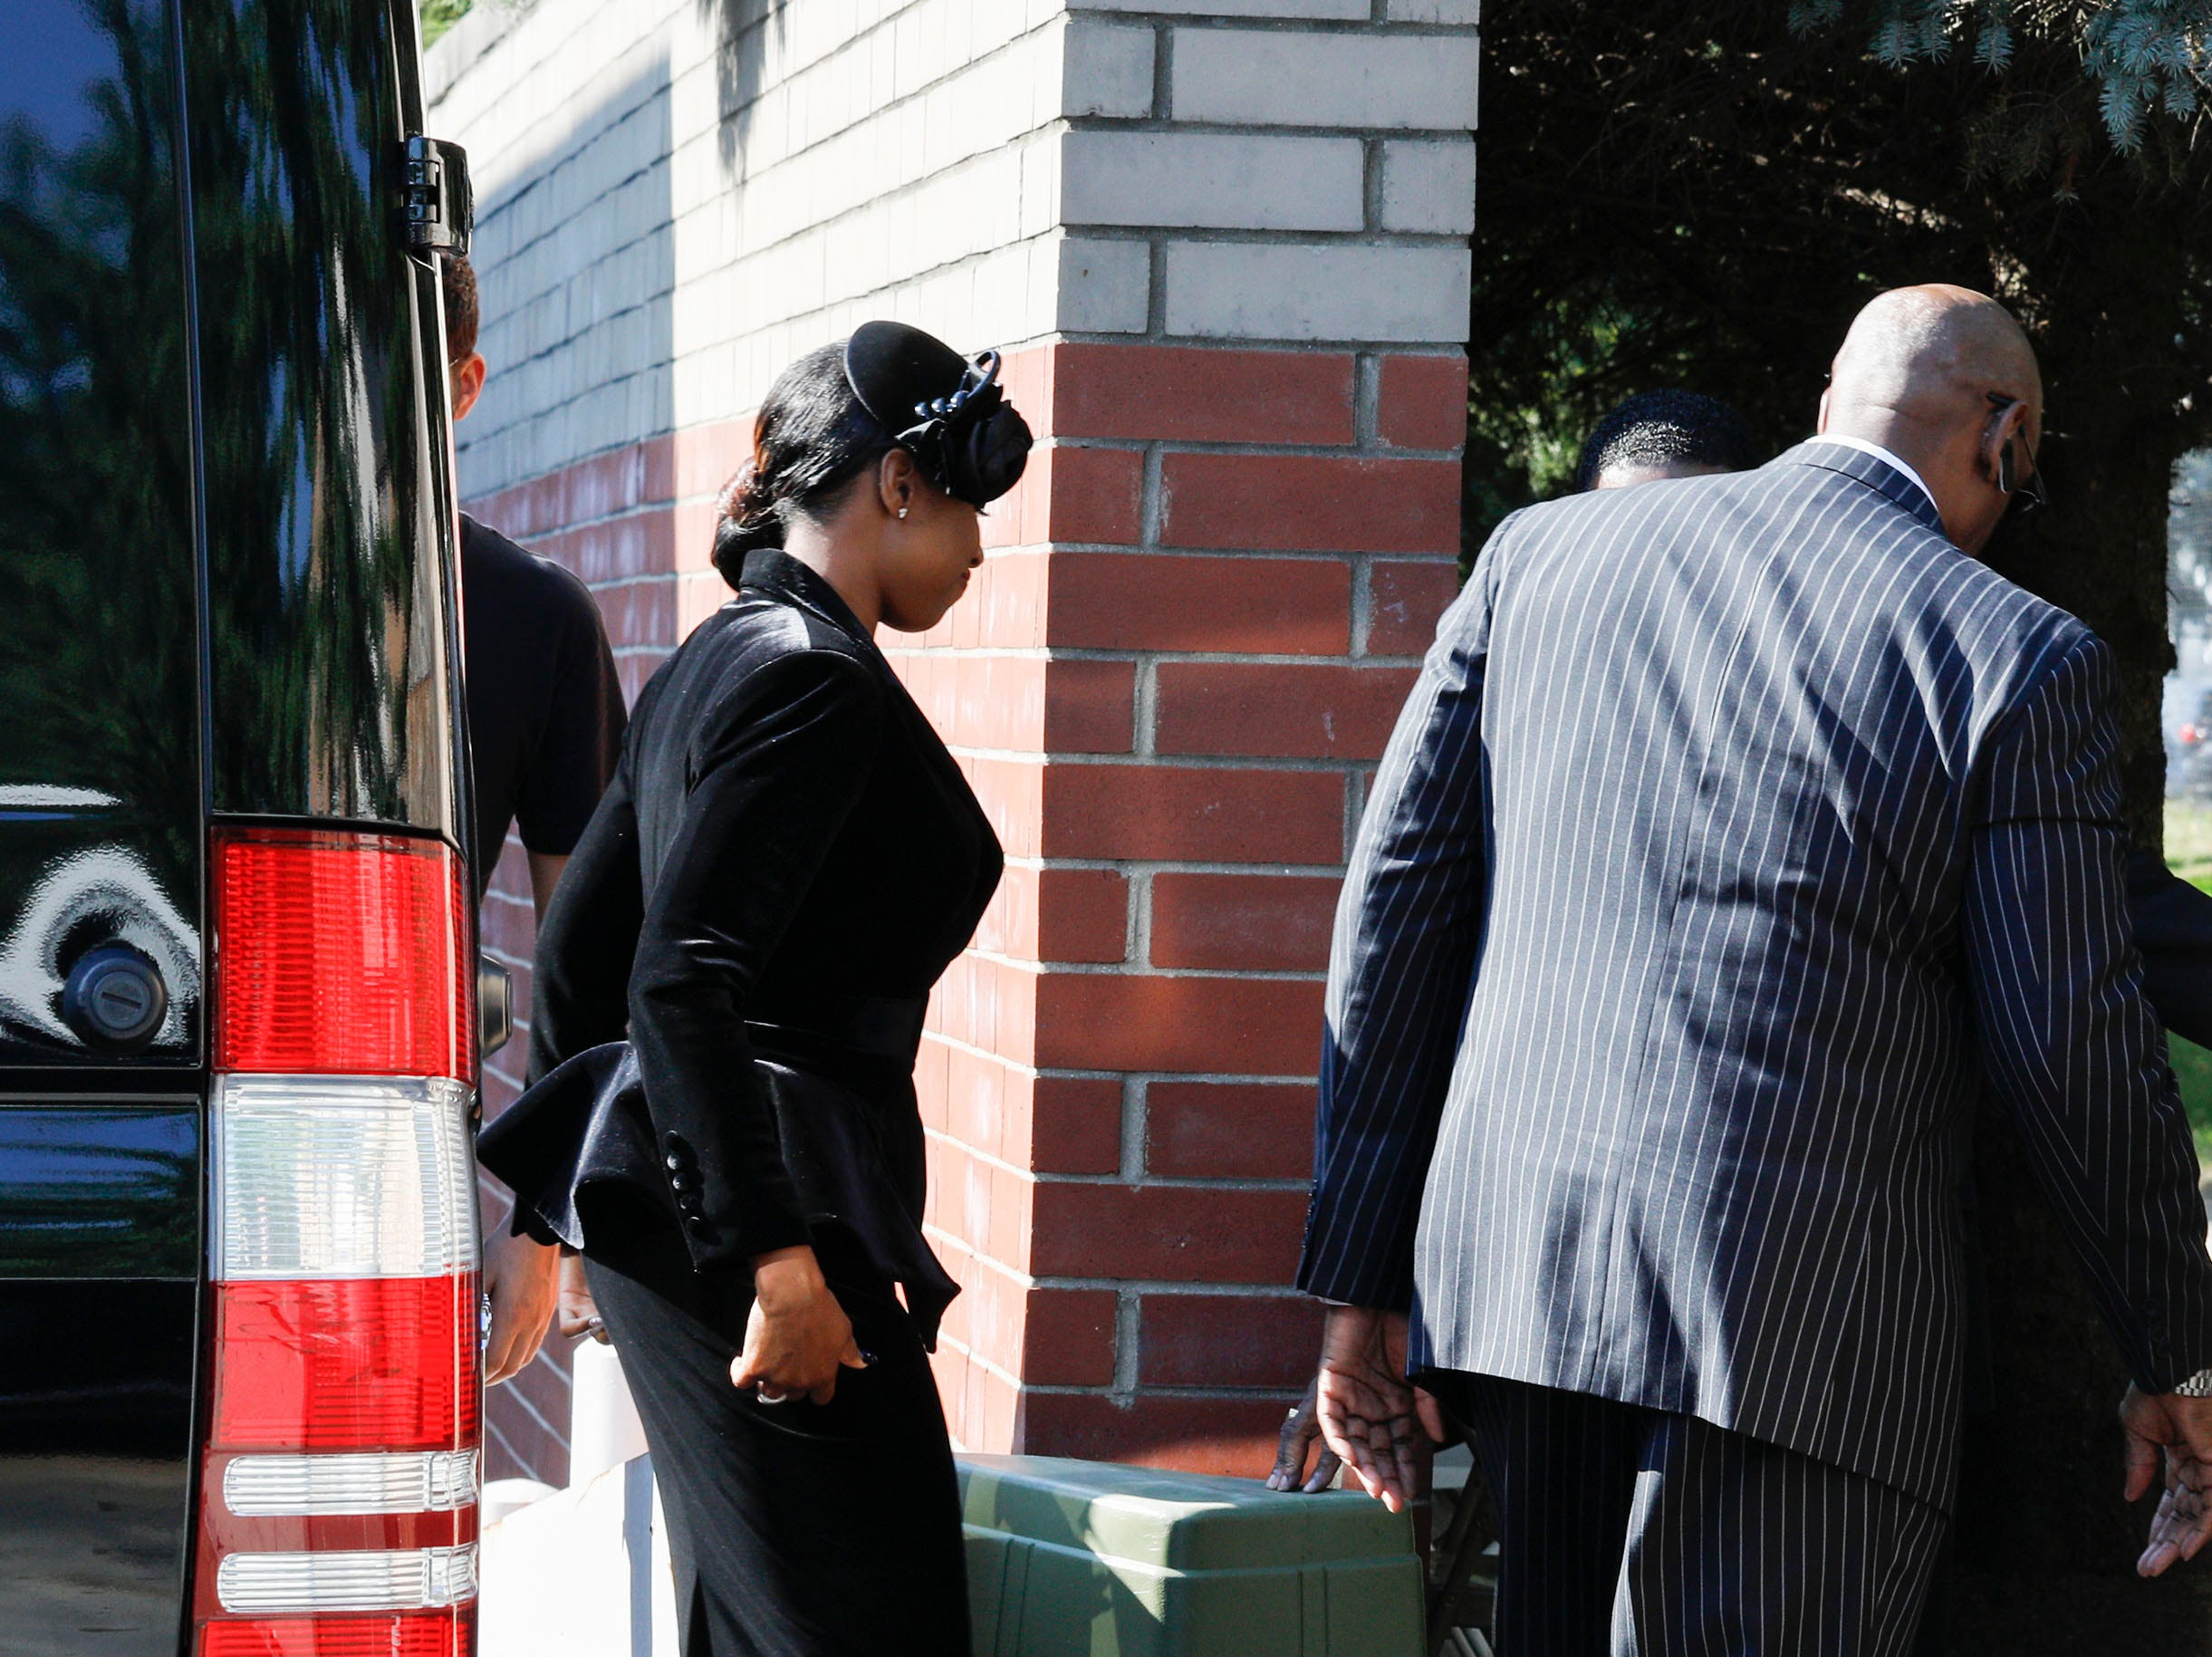 DETROIT, MI - AUGUST 31:  Jennifer Hudson enters Greater Grace Temple to attend soul music icon Aretha Franklin's funeral on August 31, 2018 in Detroit, Michigan. Dozens of musicians and dignitaries are scheduled to either speak or perform at the singer's funeral, including former President Bill Clinton, Stevie Wonder, Faith Hill, Ariana Grande, Chaka Khan, Smokey Robinson, Jennifer Hudson, and Cicely Tyson. (Photo by Bill Pugliano/Getty Images) ORG XMIT: 775217543 ORIG FILE ID: 1025522862